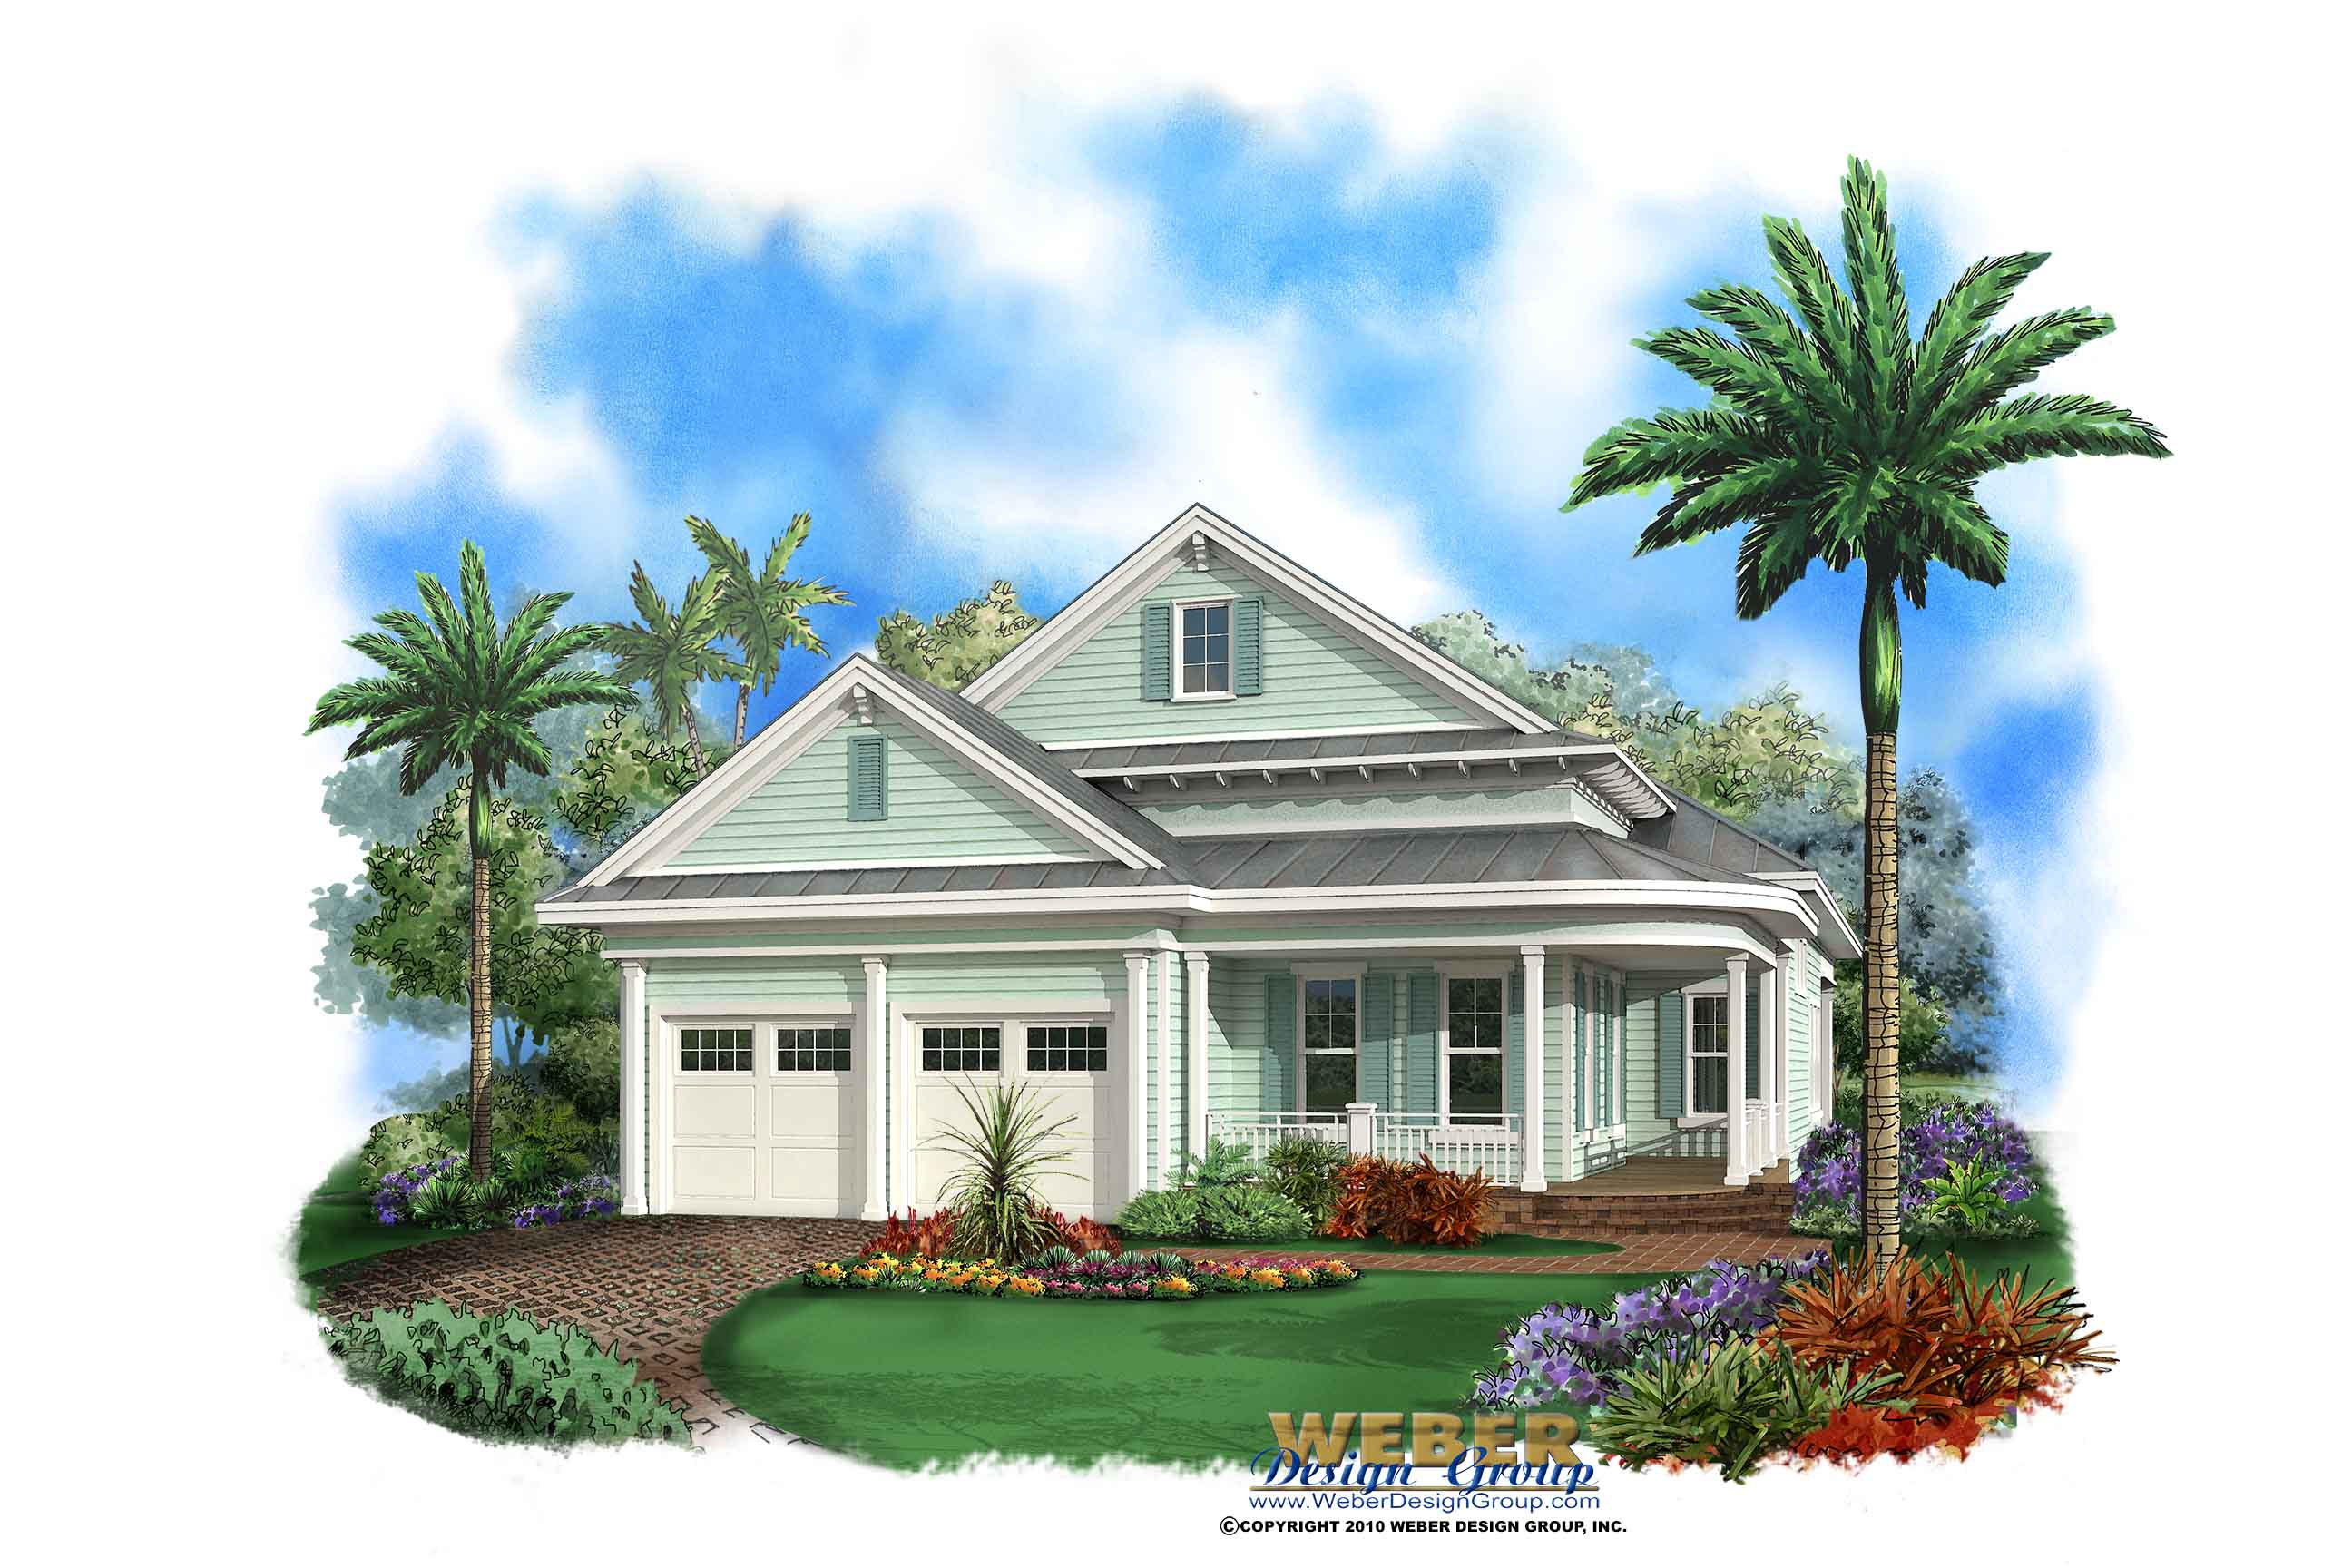 seabreeze house plan - Beach House Plans